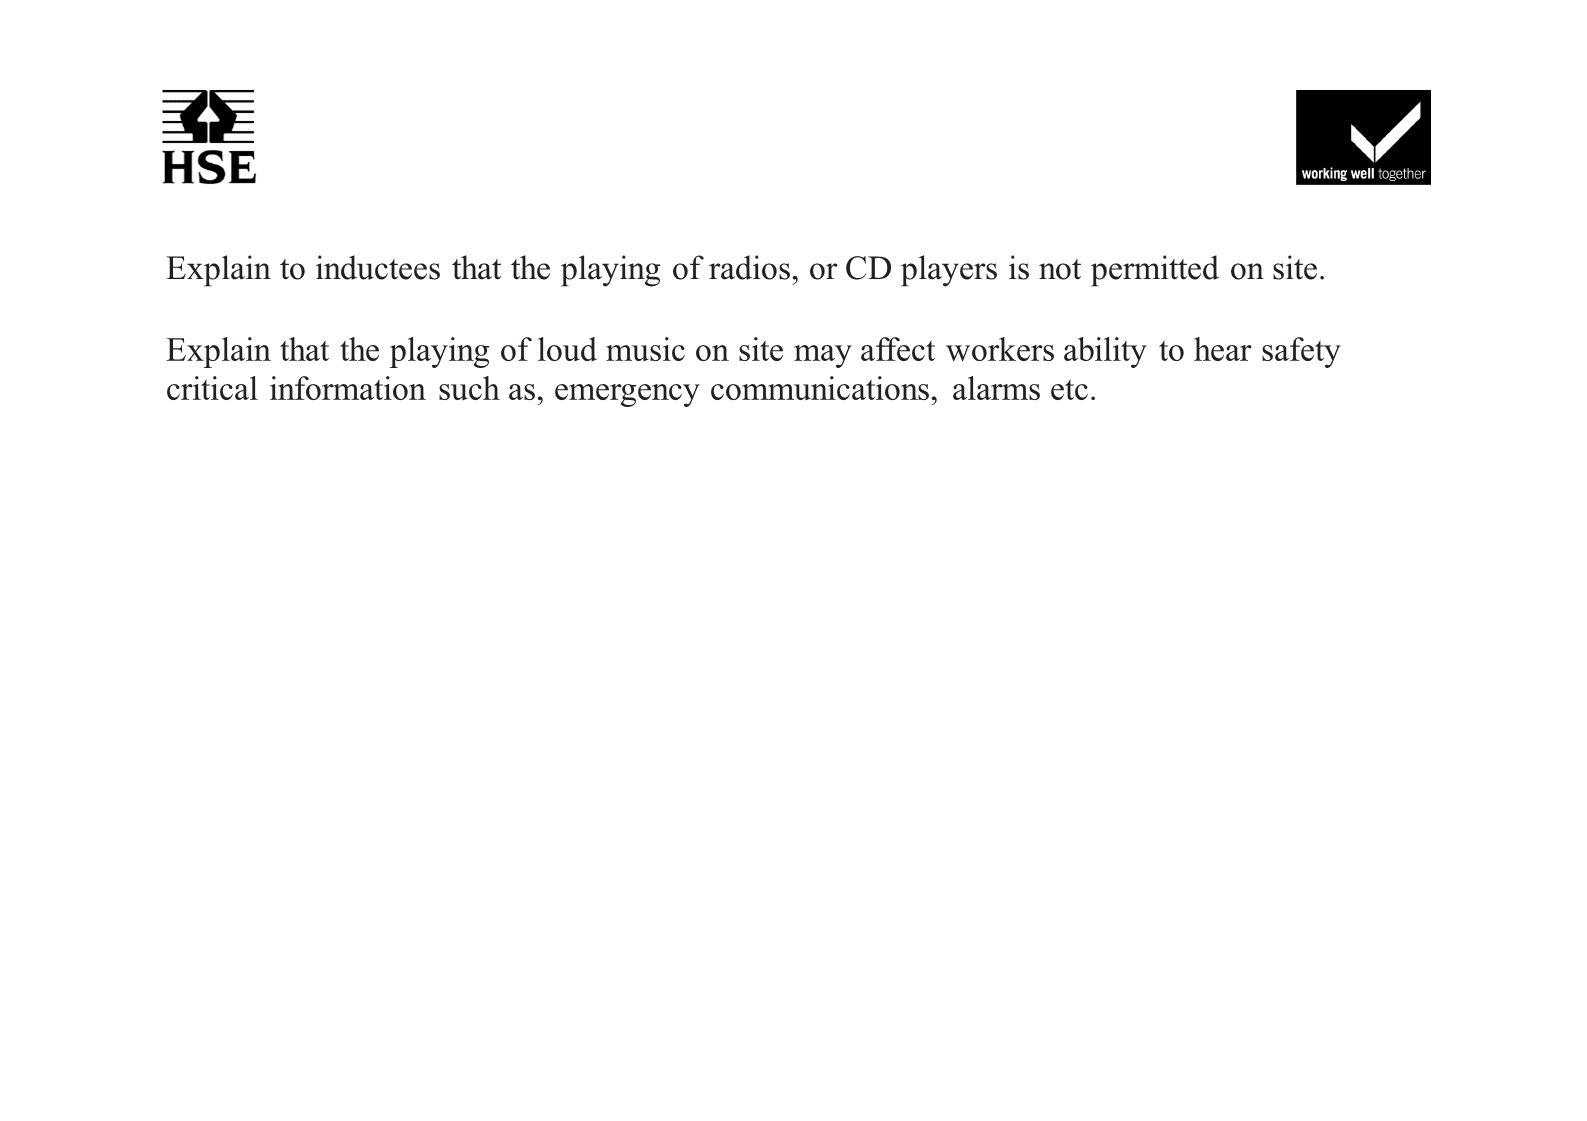 Explain to inductees that the playing of radios, or CD players is not permitted on site.